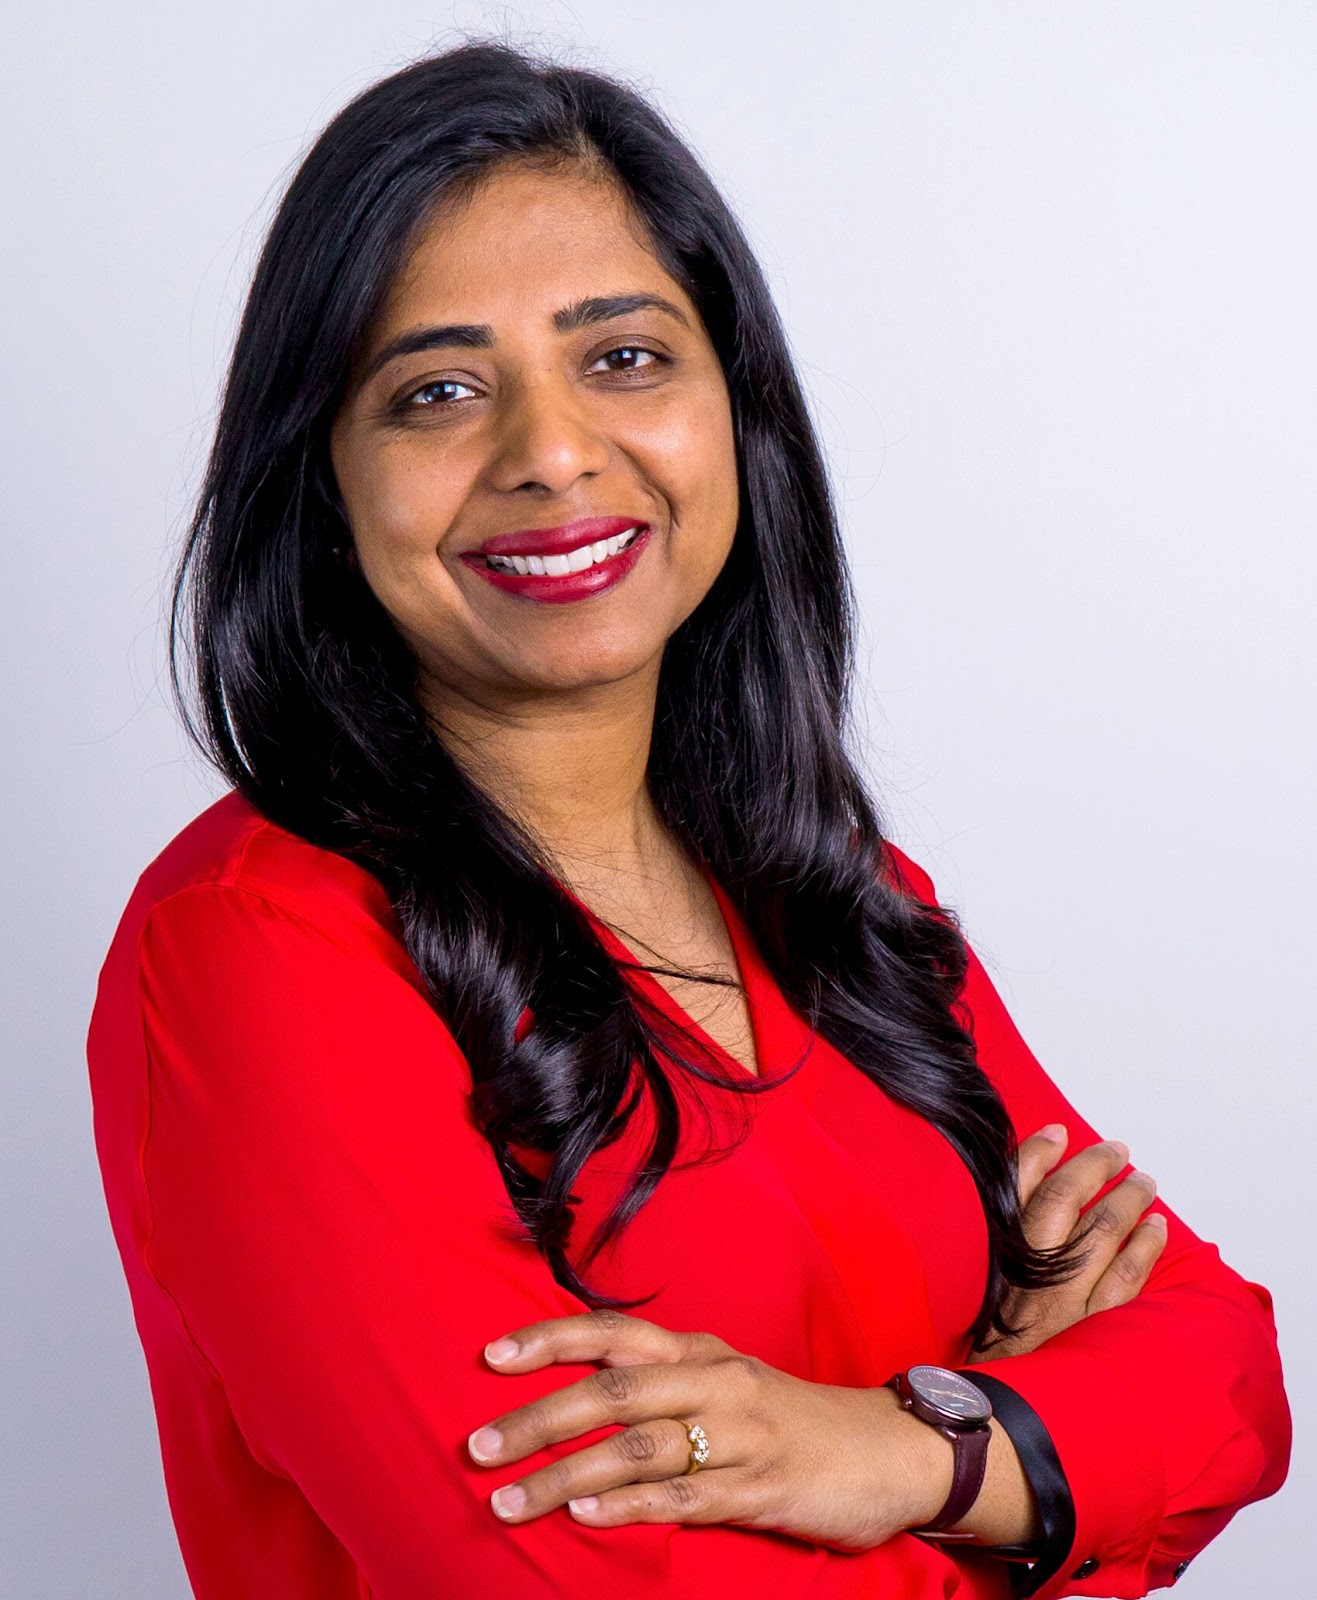 Ritu Narayan - Founder & CEO of Zum headshot